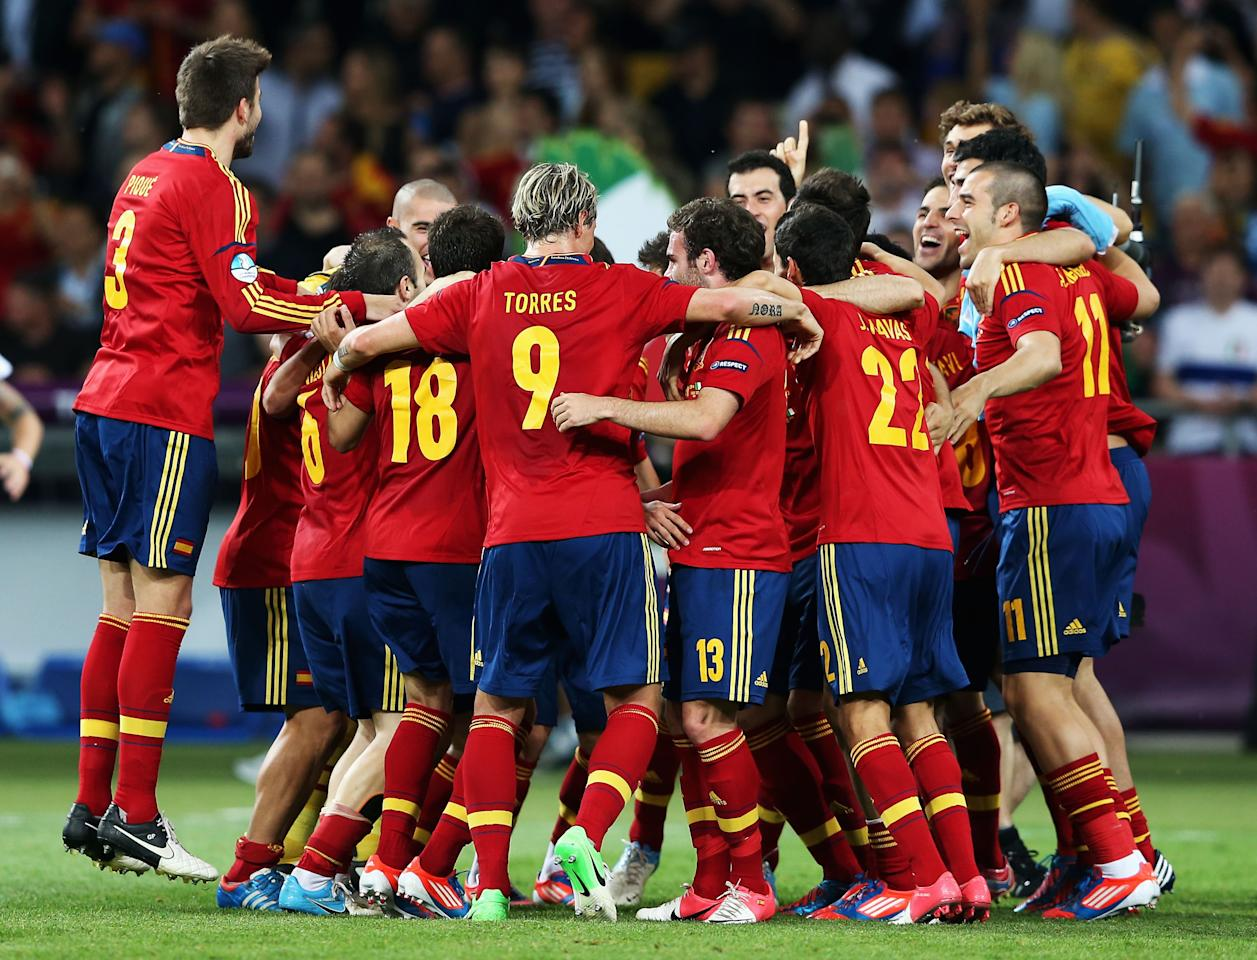 KIEV, UKRAINE - JULY 01:  Spain players celebrate victory after the UEFA EURO 2012 final match between Spain and Italy at the Olympic Stadium on July 1, 2012 in Kiev, Ukraine.  (Photo by Alex Grimm/Getty Images)